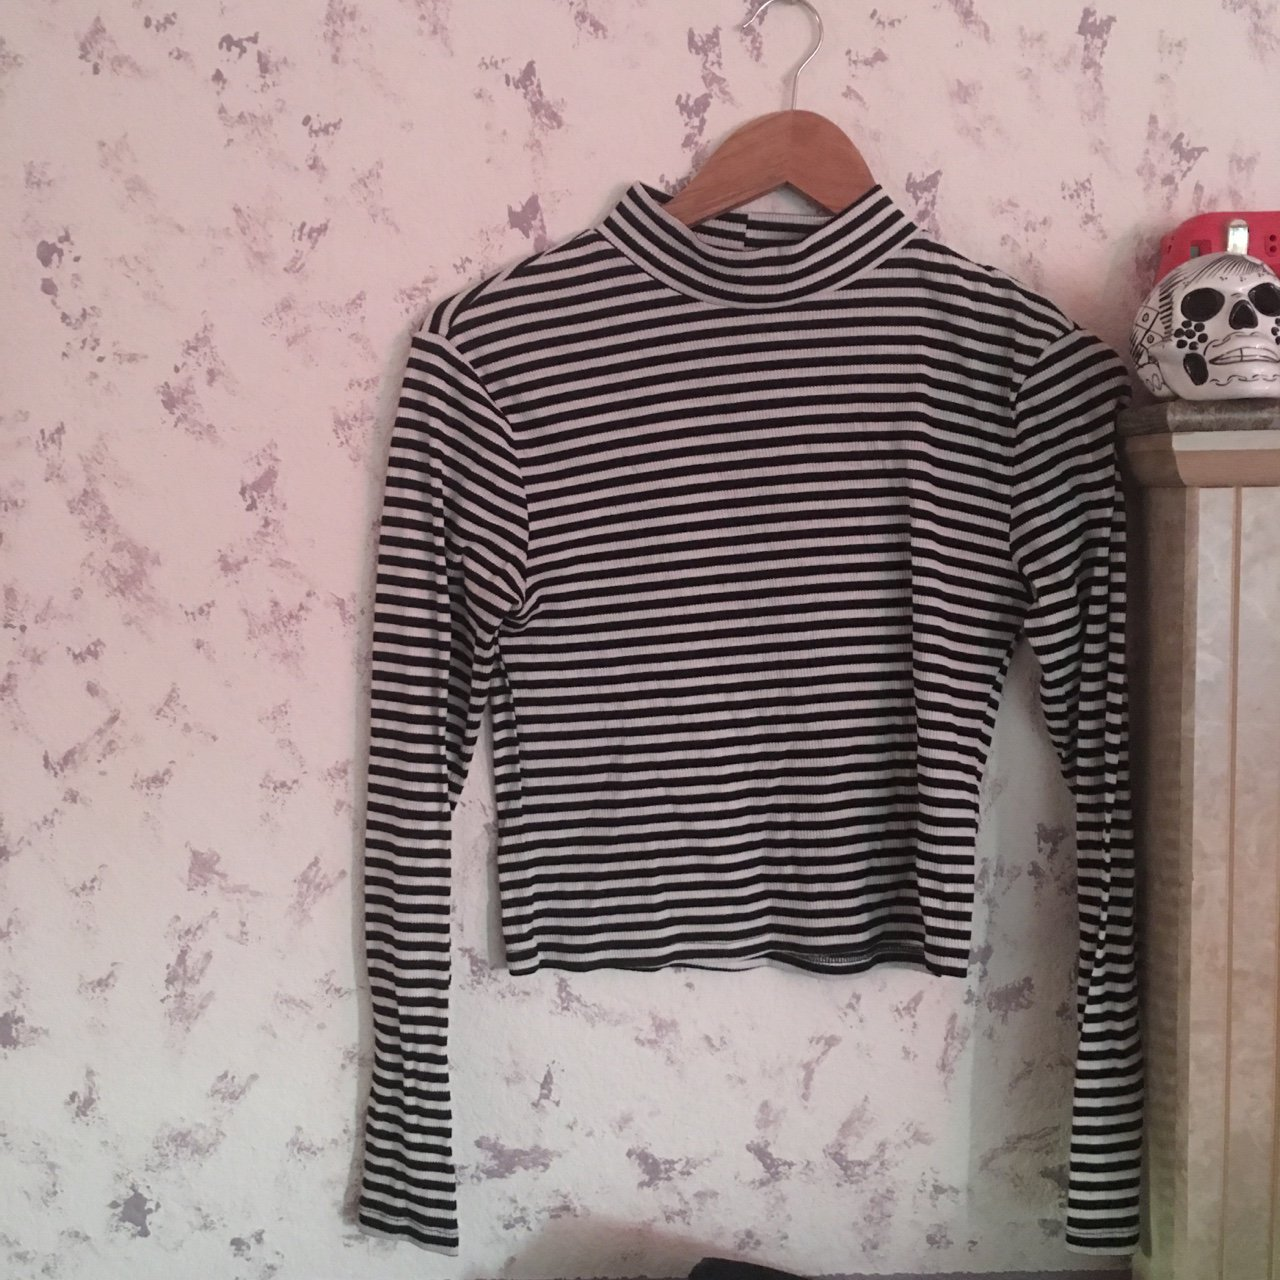 be4b31422967e H M mock neck striped long sleeve - fits as crop top New or - Depop